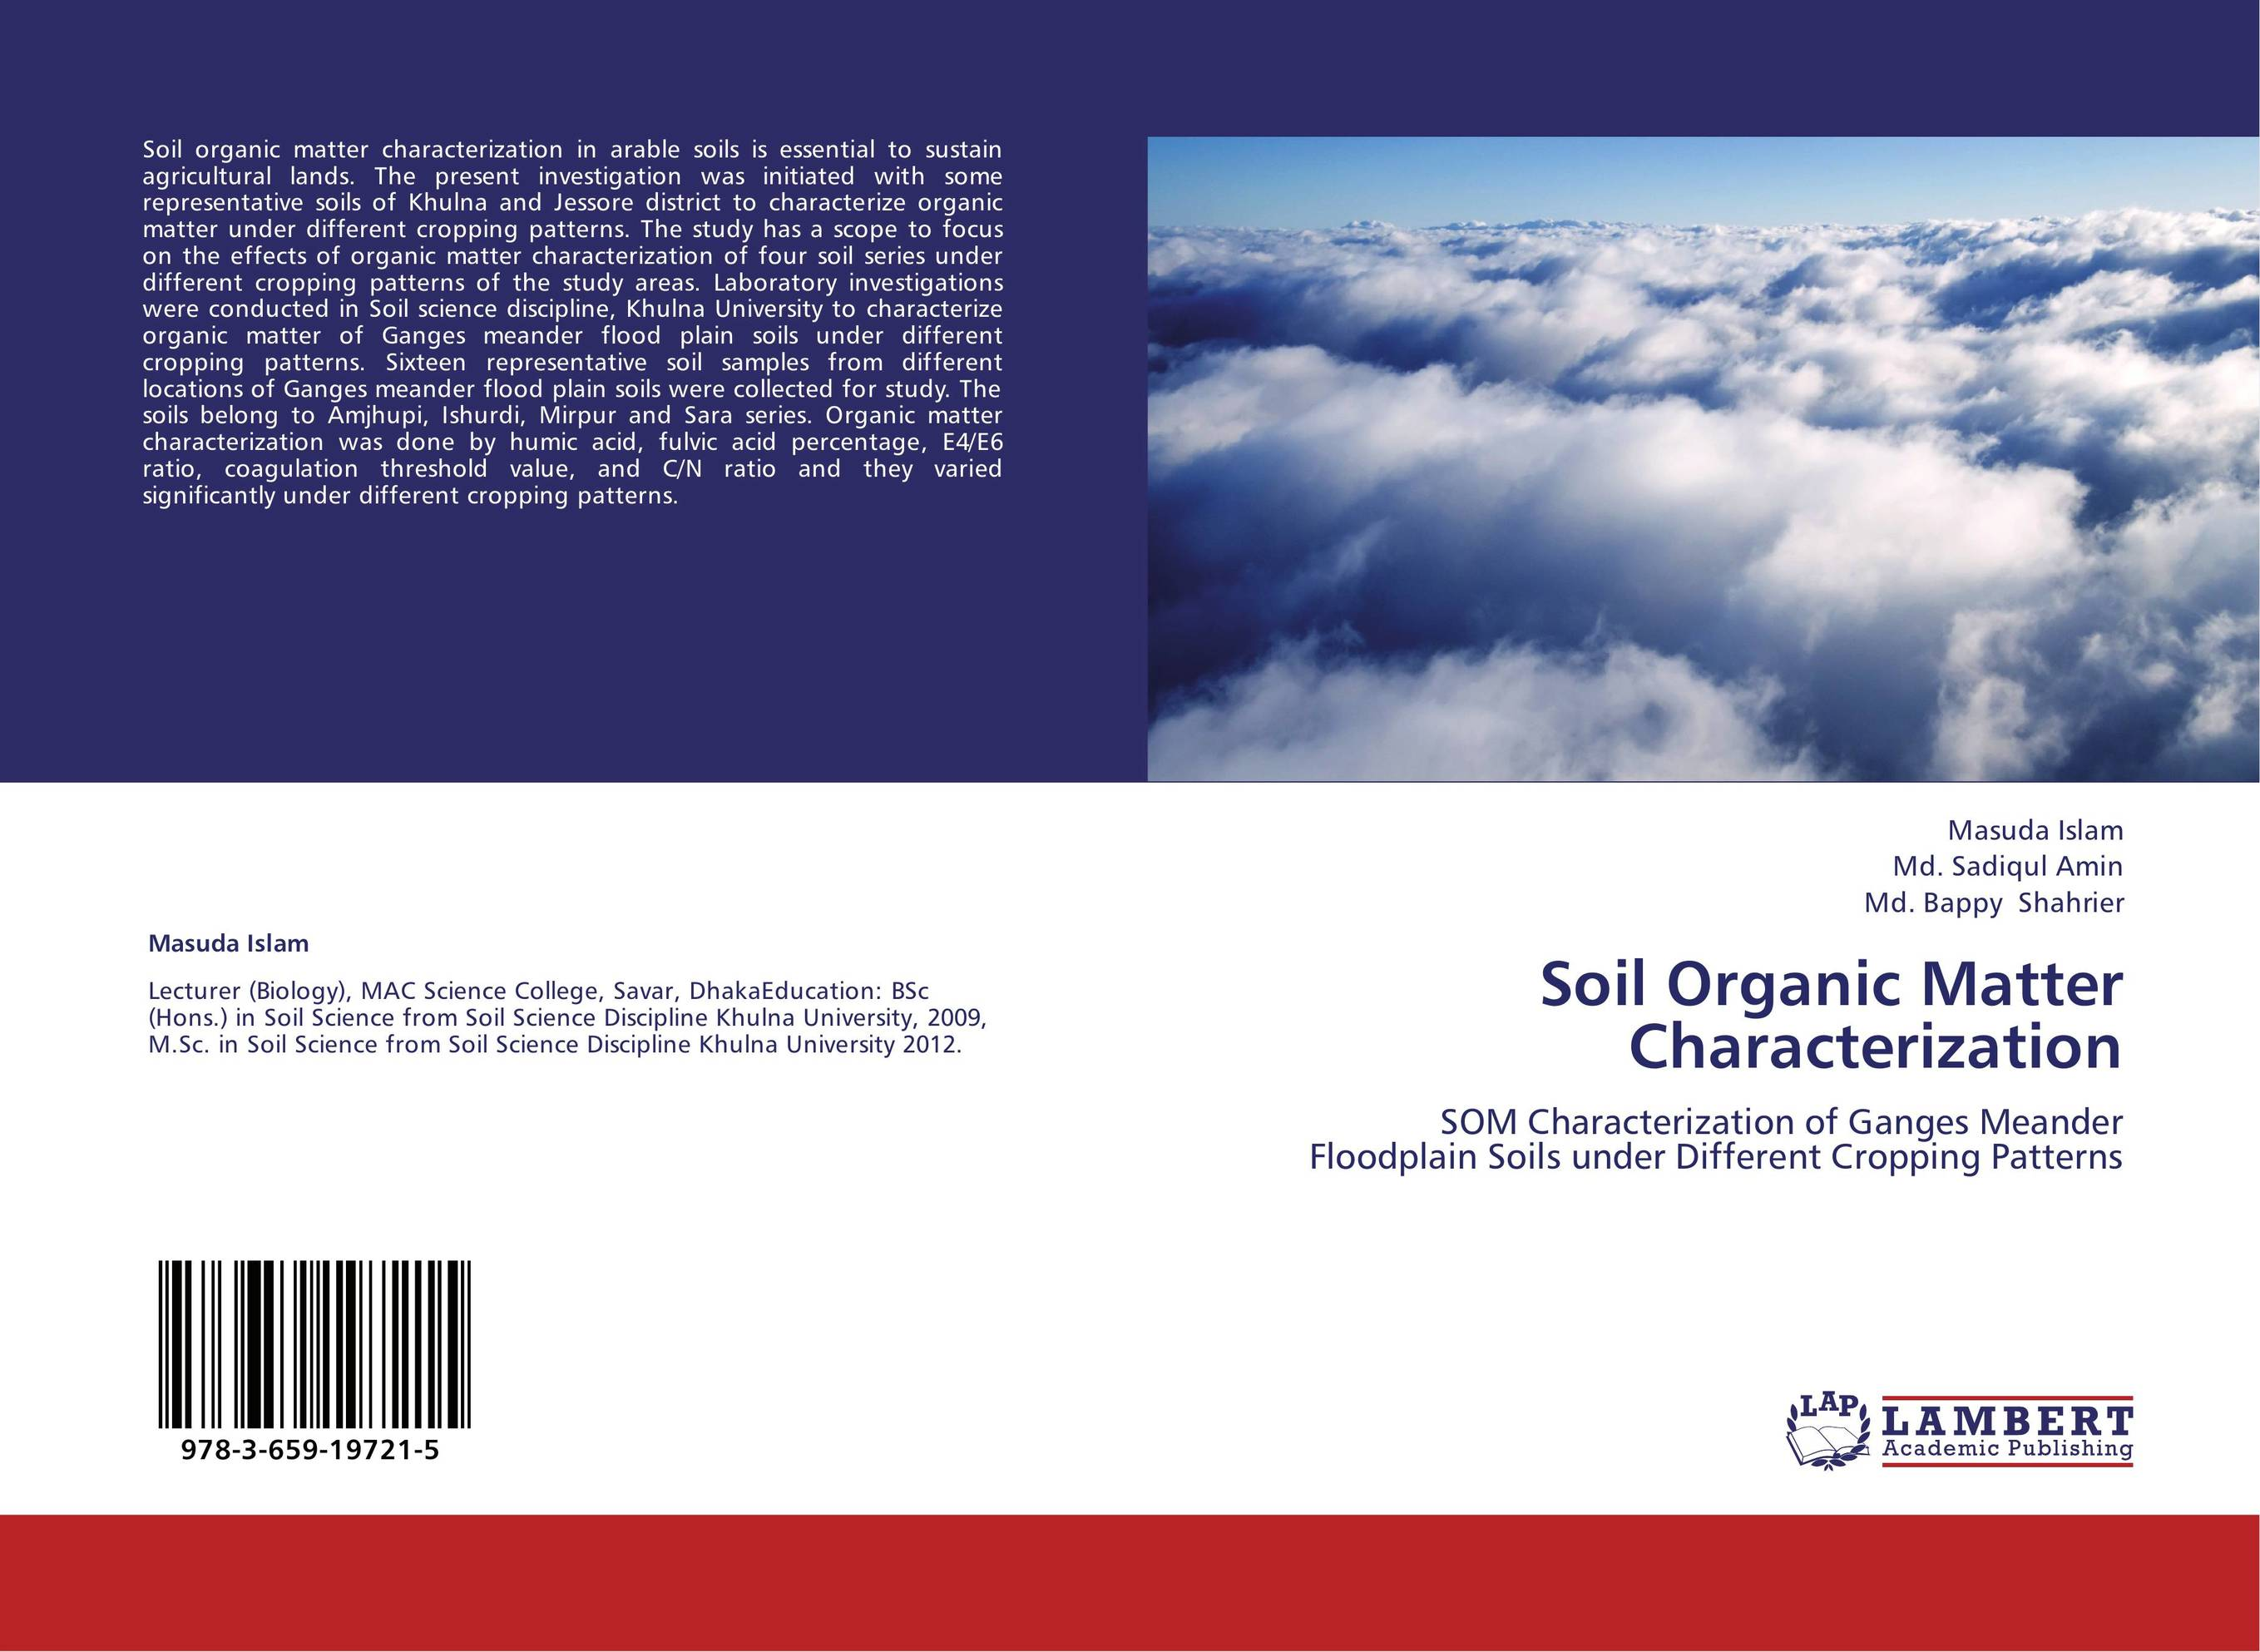 soil and organic matter When the organic content exceeds 15% but is 30%, the term organic soil is employed finally, soils with organic content higher than finally, soils with organic content higher than 30% are termed highly organic soils or peats.